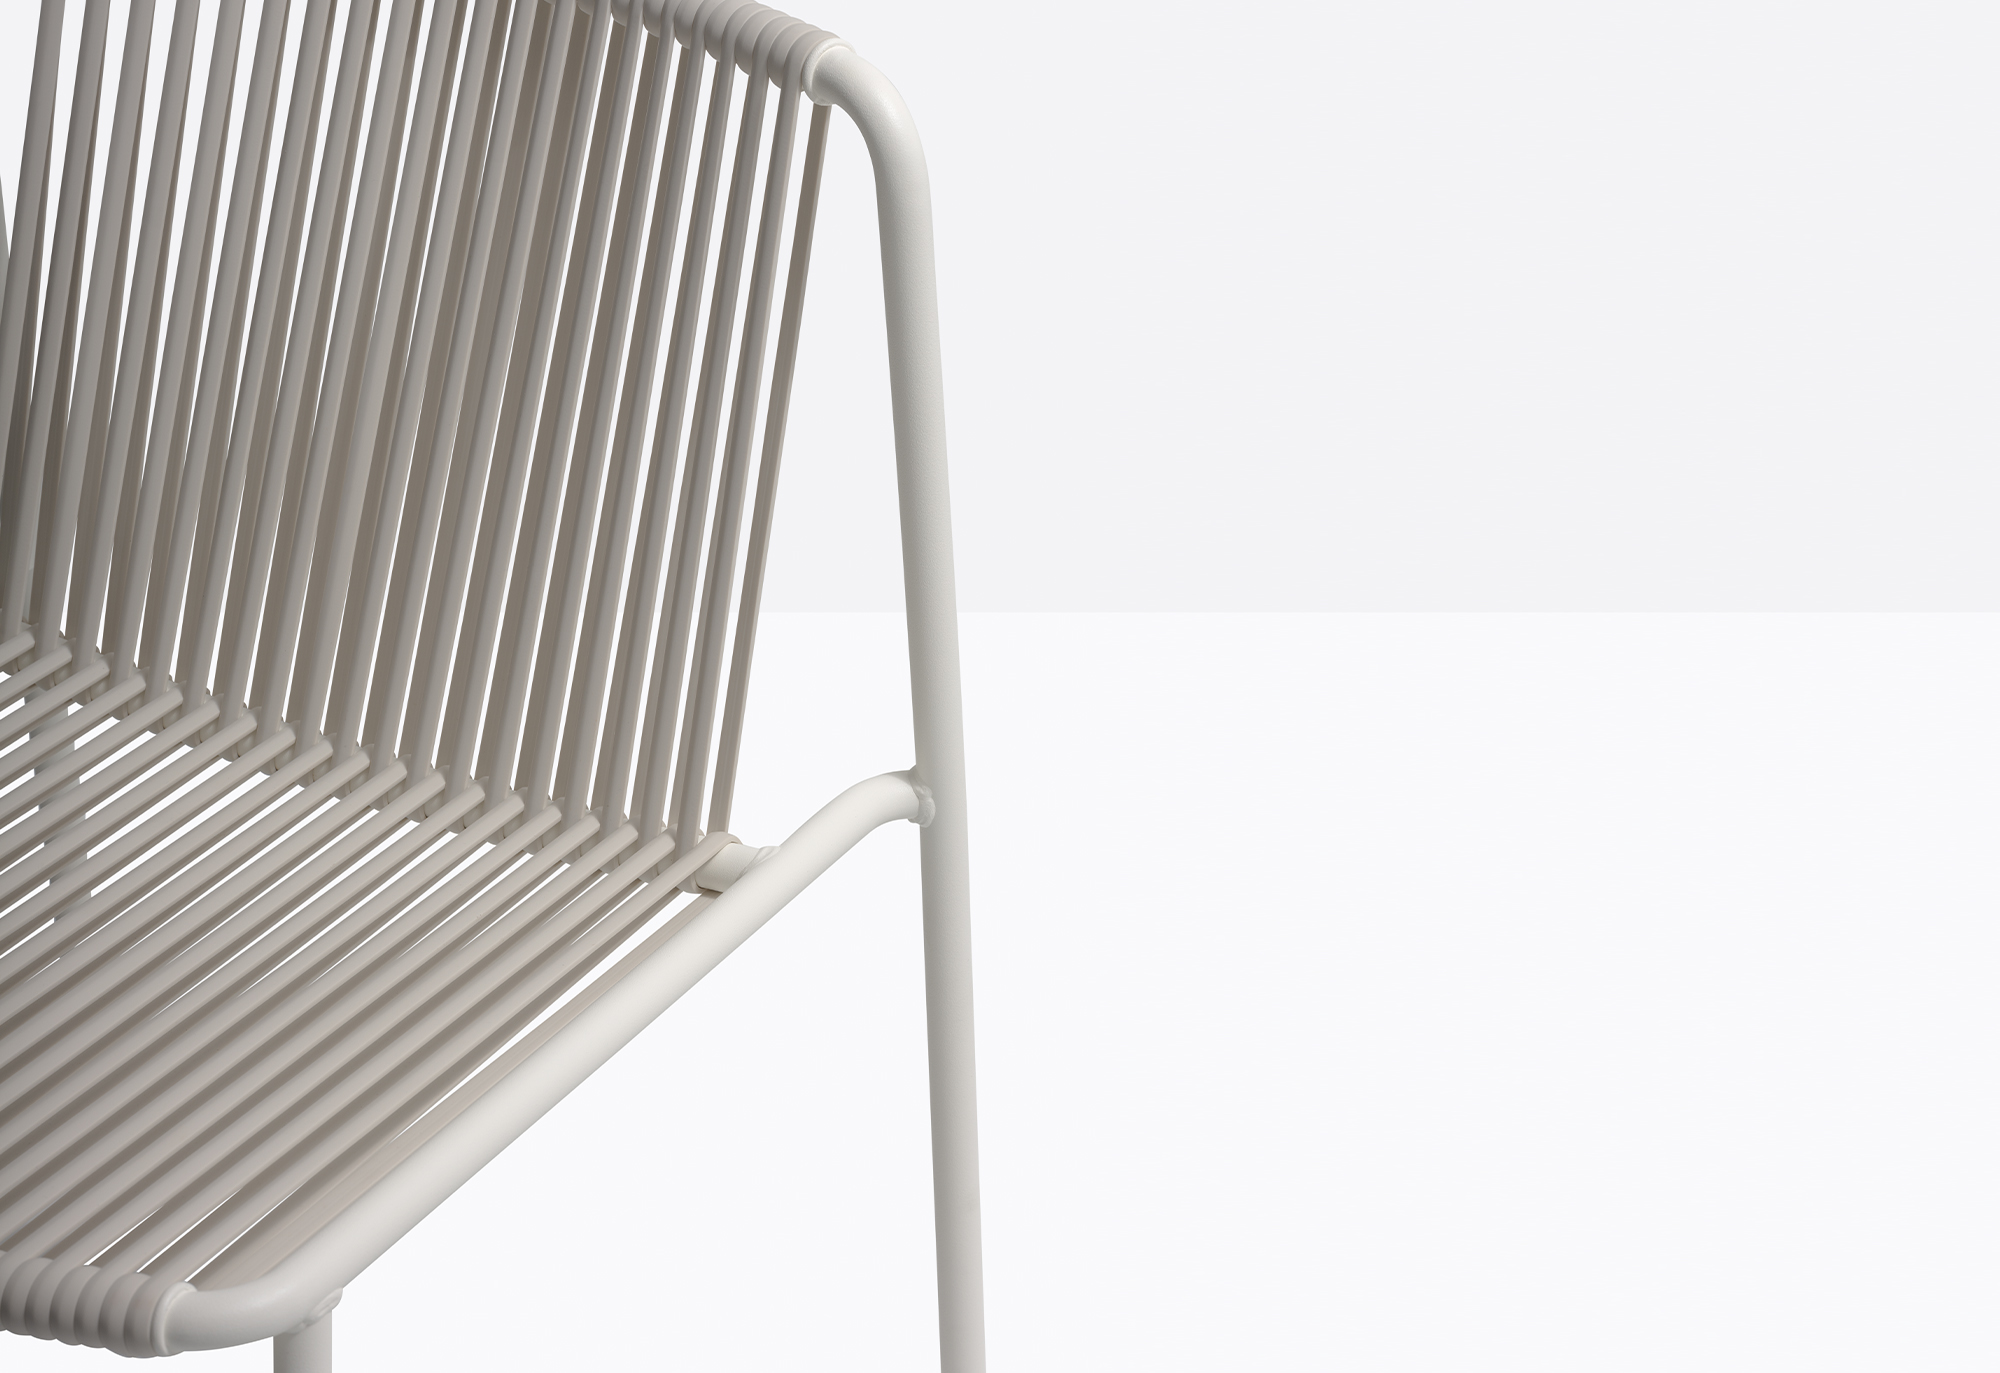 Tribeca Chair - Tribeca takes us back in time with a modern reinterpretation of classic Sixties patio chairs made from steel and woven material. Chair with Ø2cm tube structure powder coated for outdoor use, backrest and seat in woven extruded PVC with a nylon core. Specifically designed for outdoor use. Stackable.  | Matter of Stuff